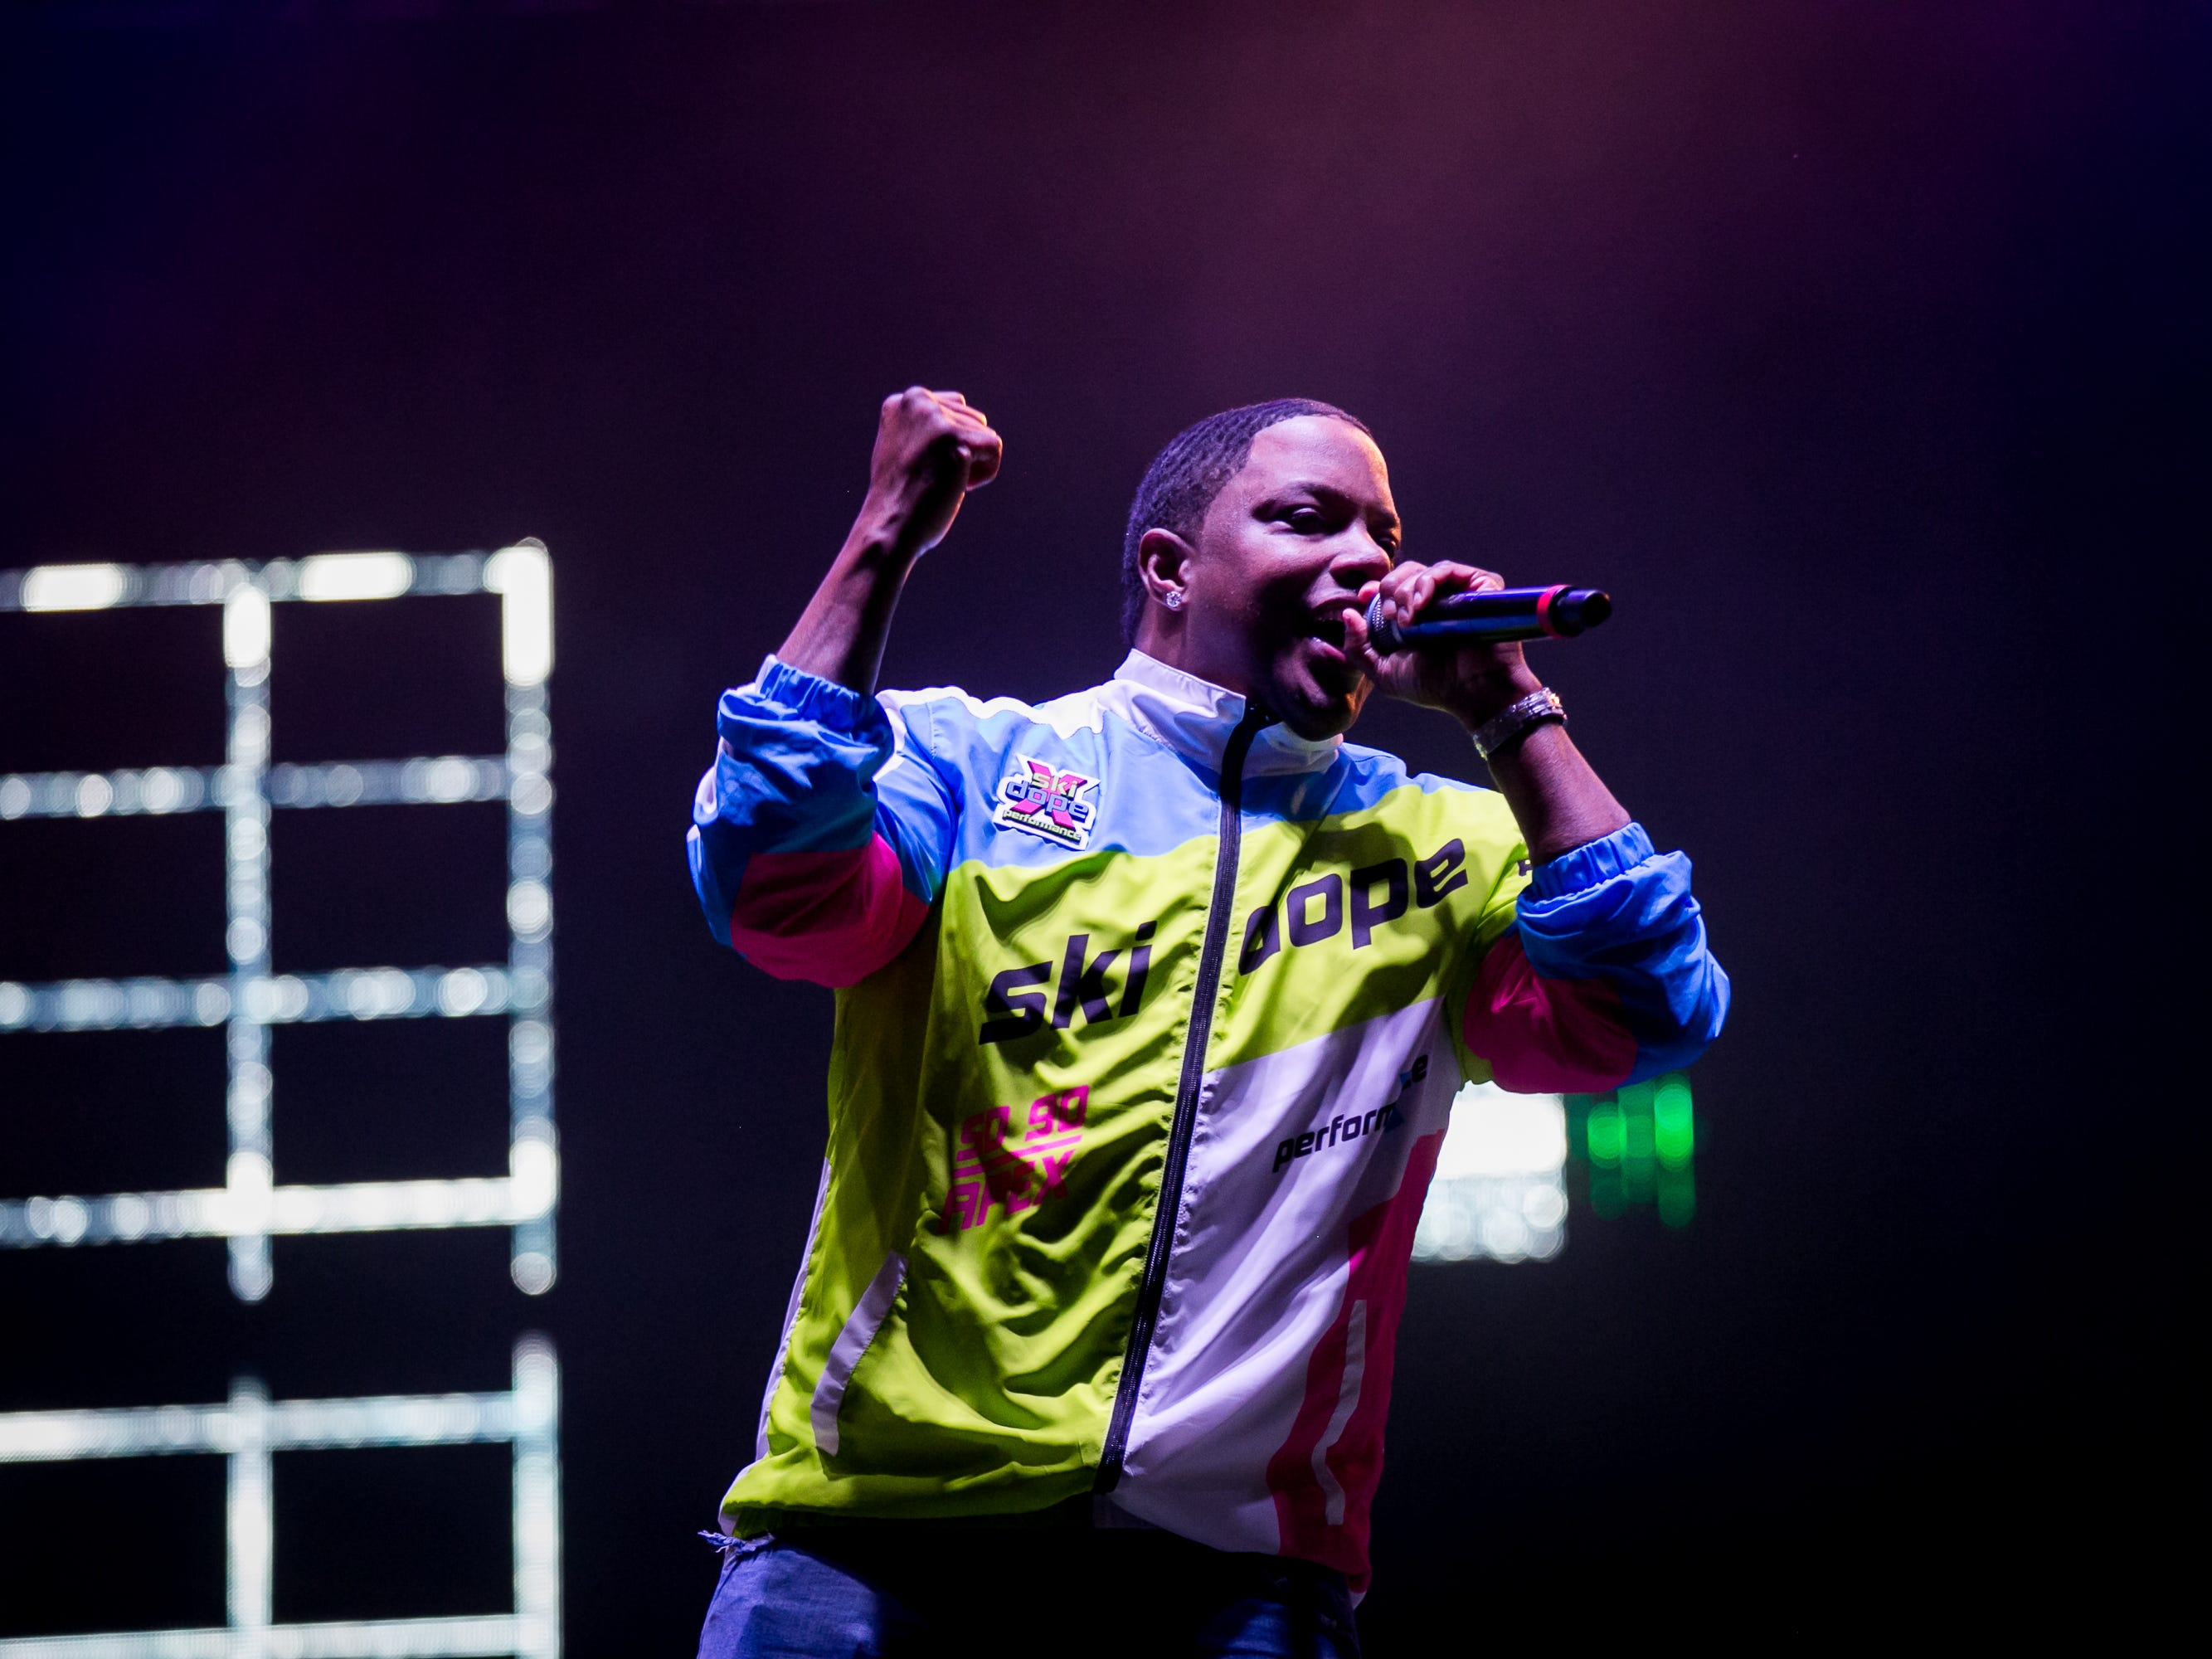 Mase performs at Pot of Gold Music Festival at Steele Indian School Park in Phoenix on Friday, March 15.